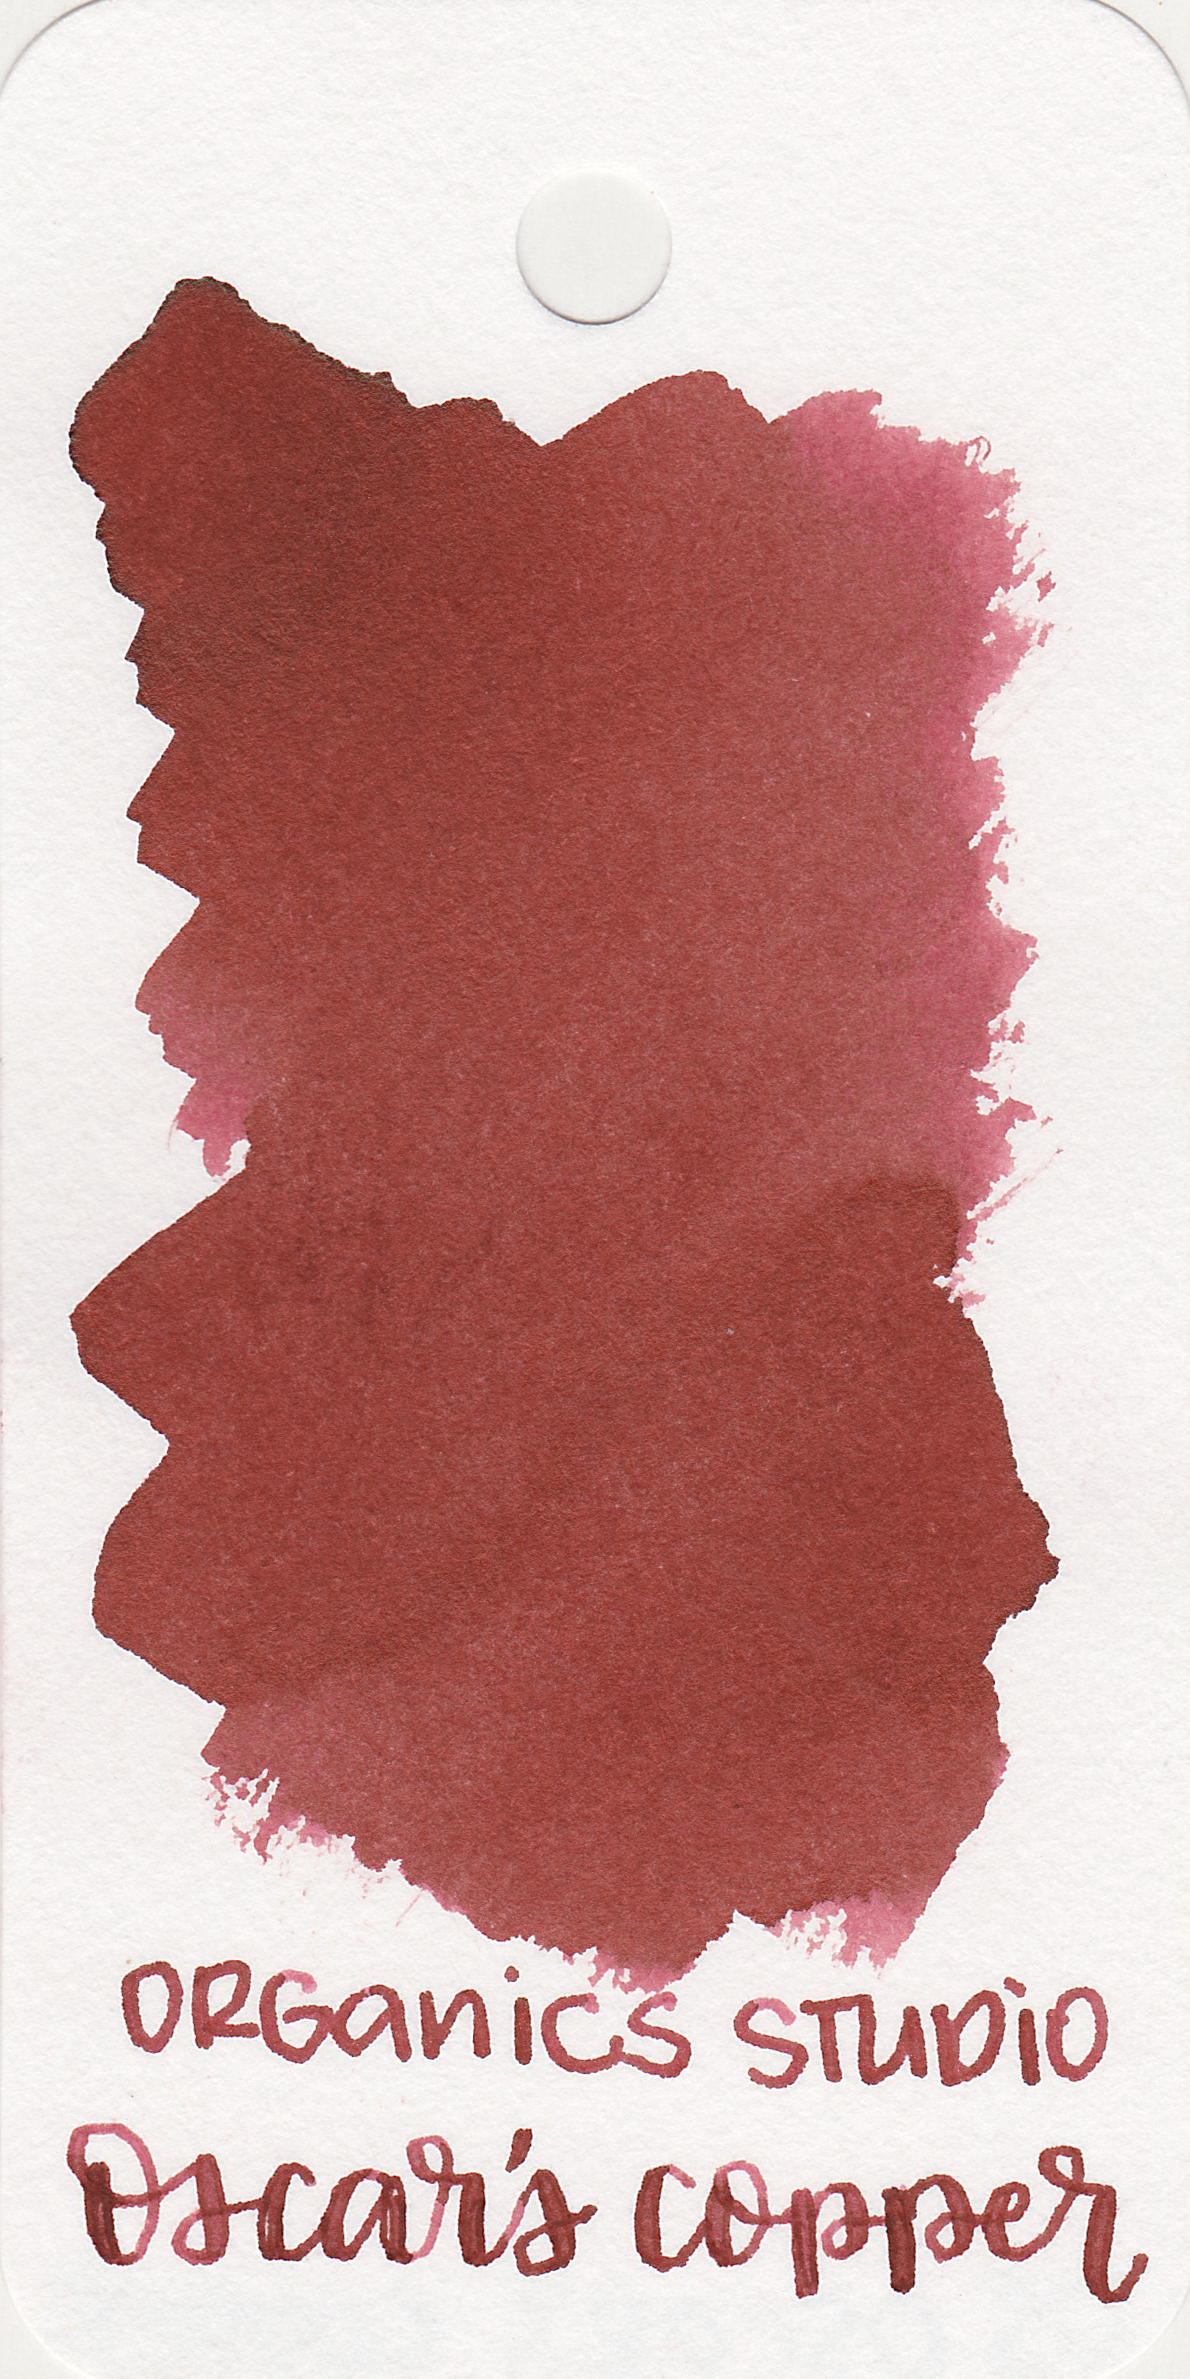 The color: - Oscar's Copper is a medium red brown.